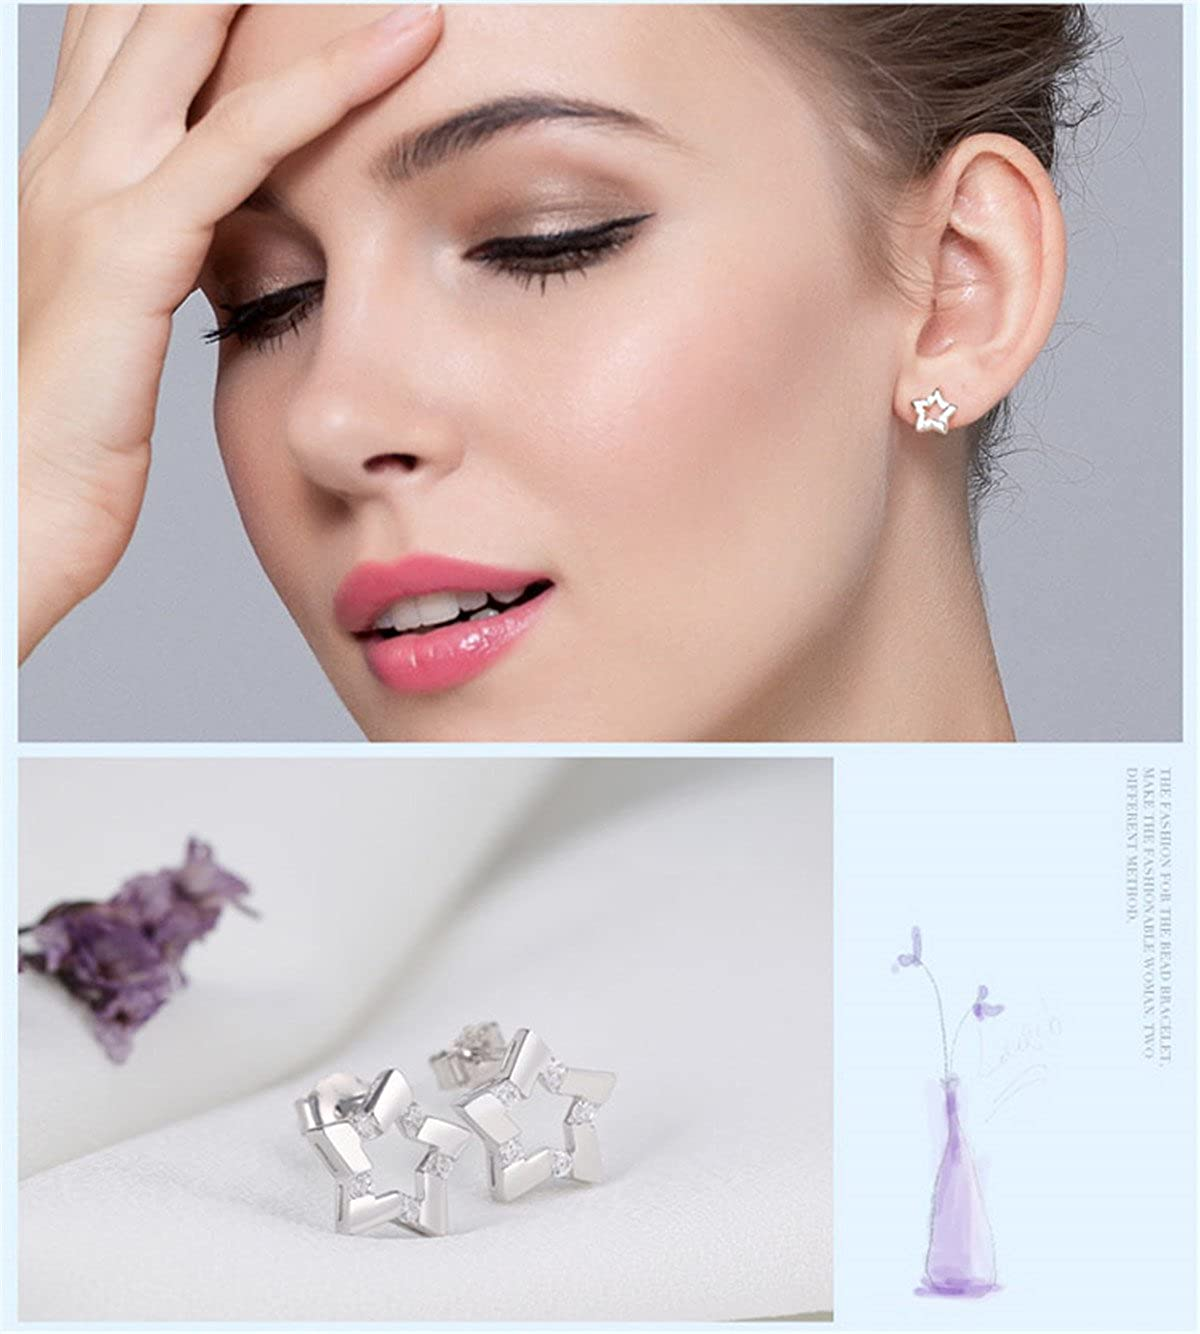 Lambent Earring White Gold Plated Studs,925 Sterling Silver Cubic Zirconia Earrings For Women Girls